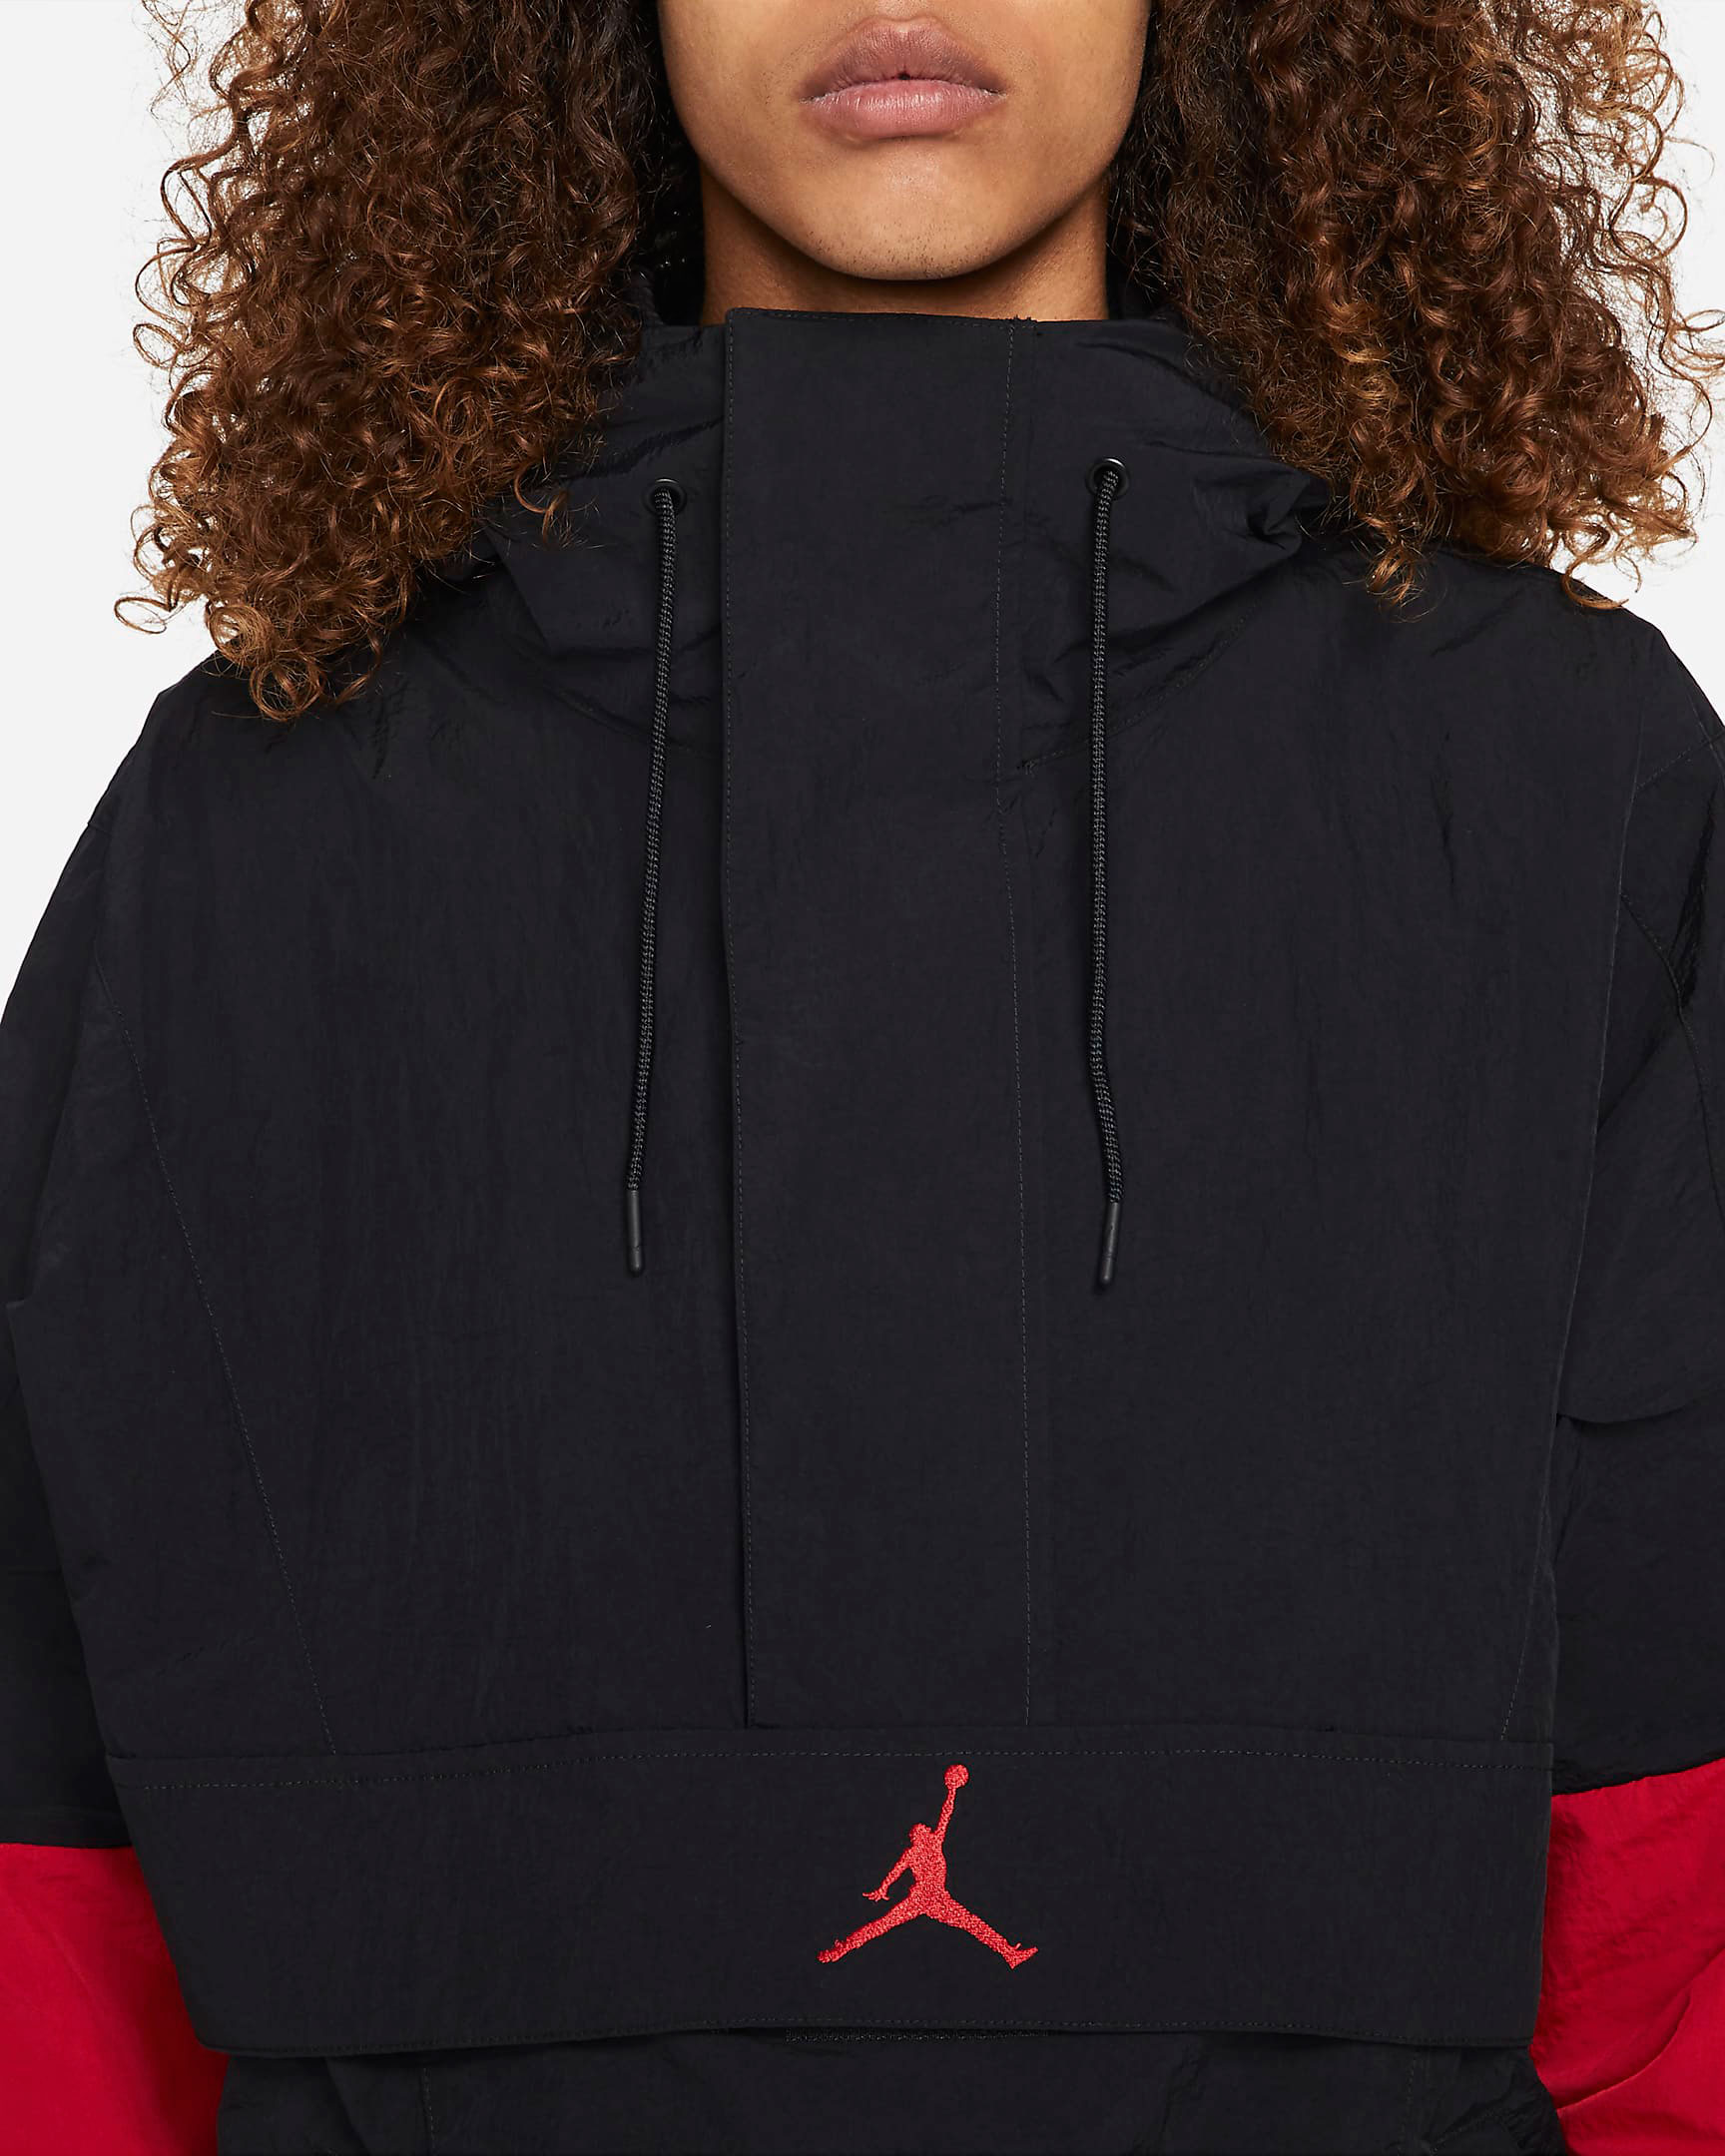 jordan-jumpman-classics-half-zip-jacket-black-red-4